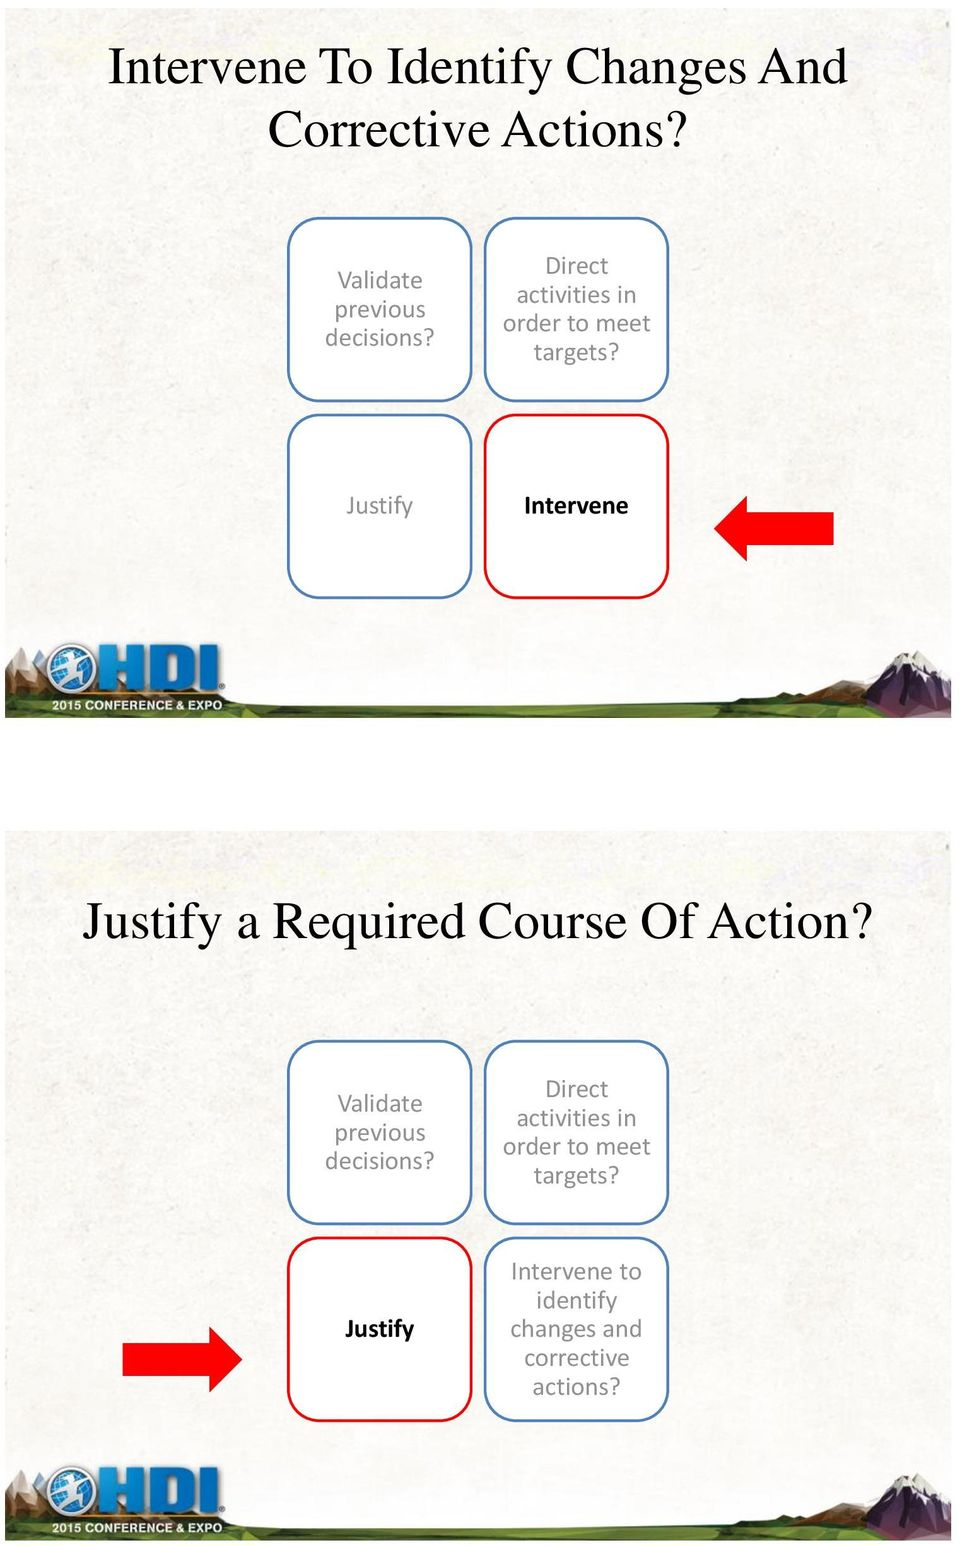 Justify Intervene Justify a Required Course Of Action?